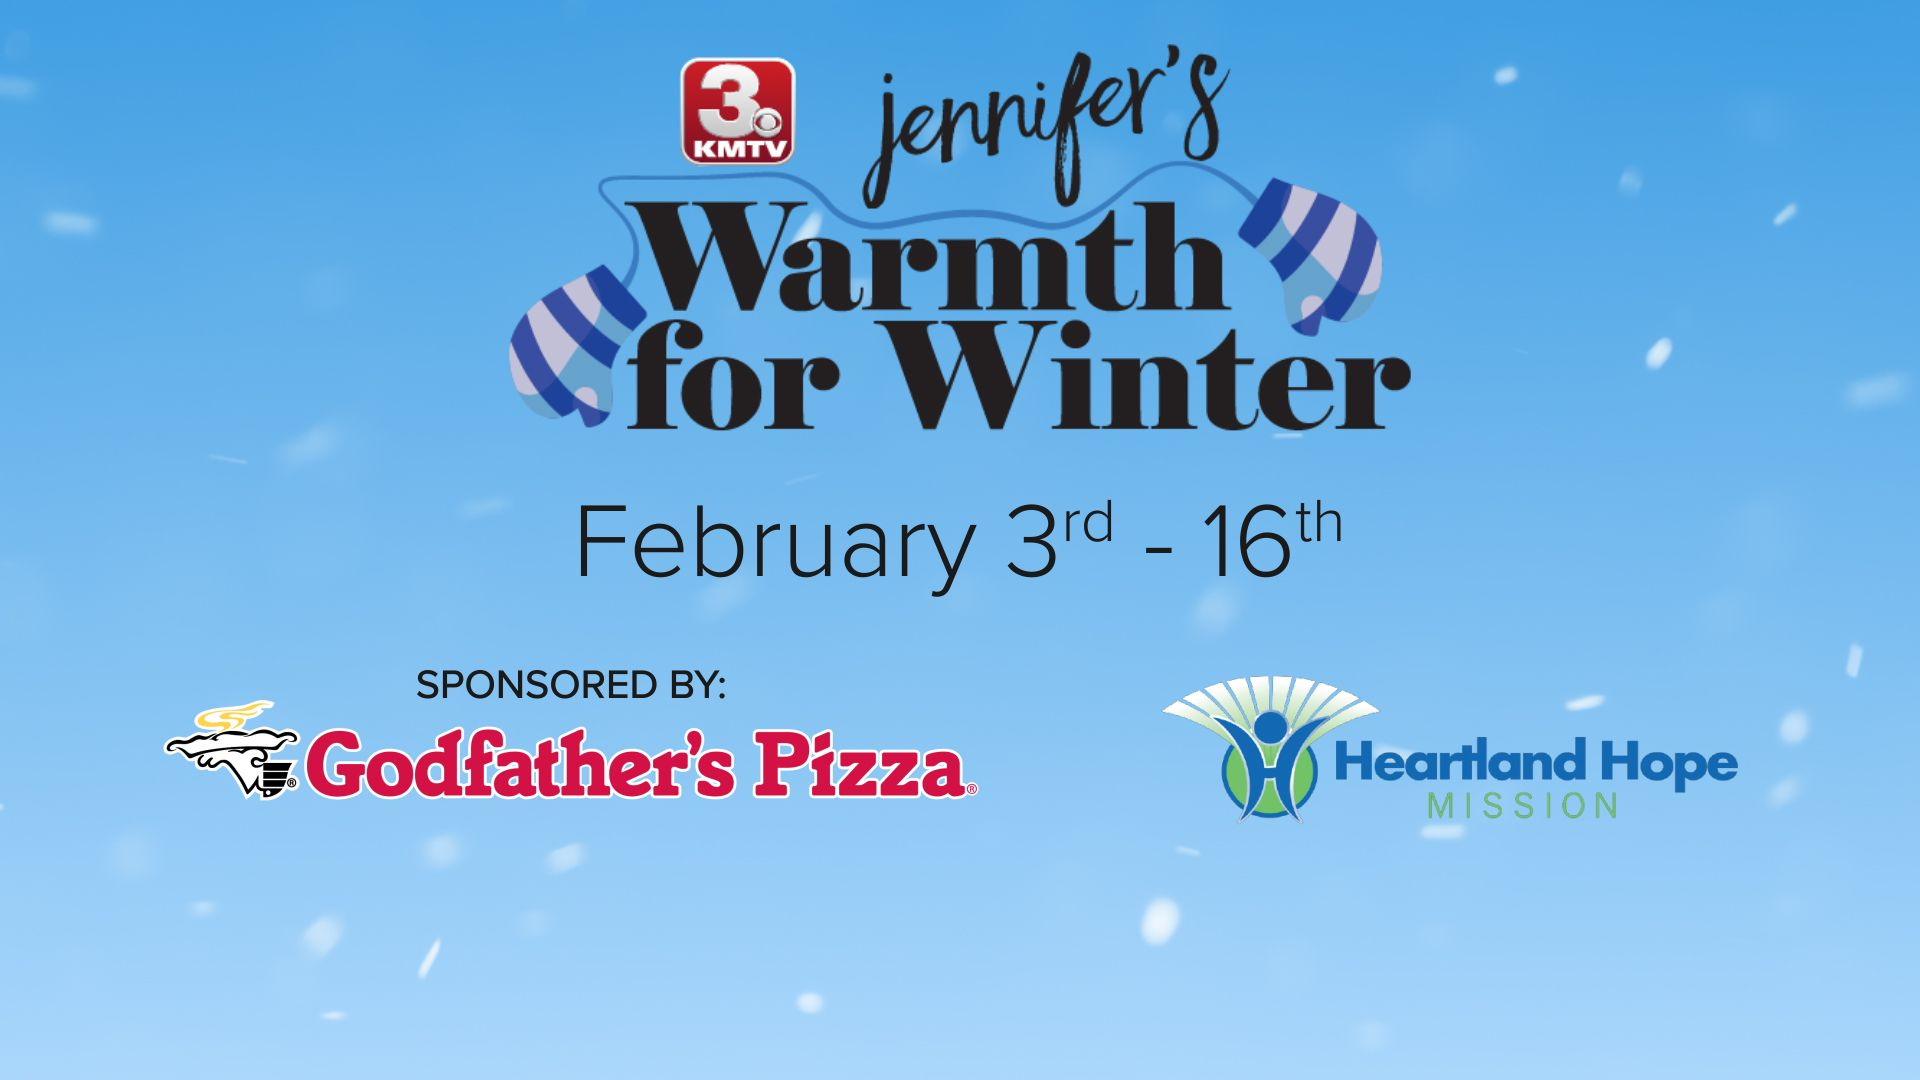 Jennifer's Warmth for Winter Coat Drive